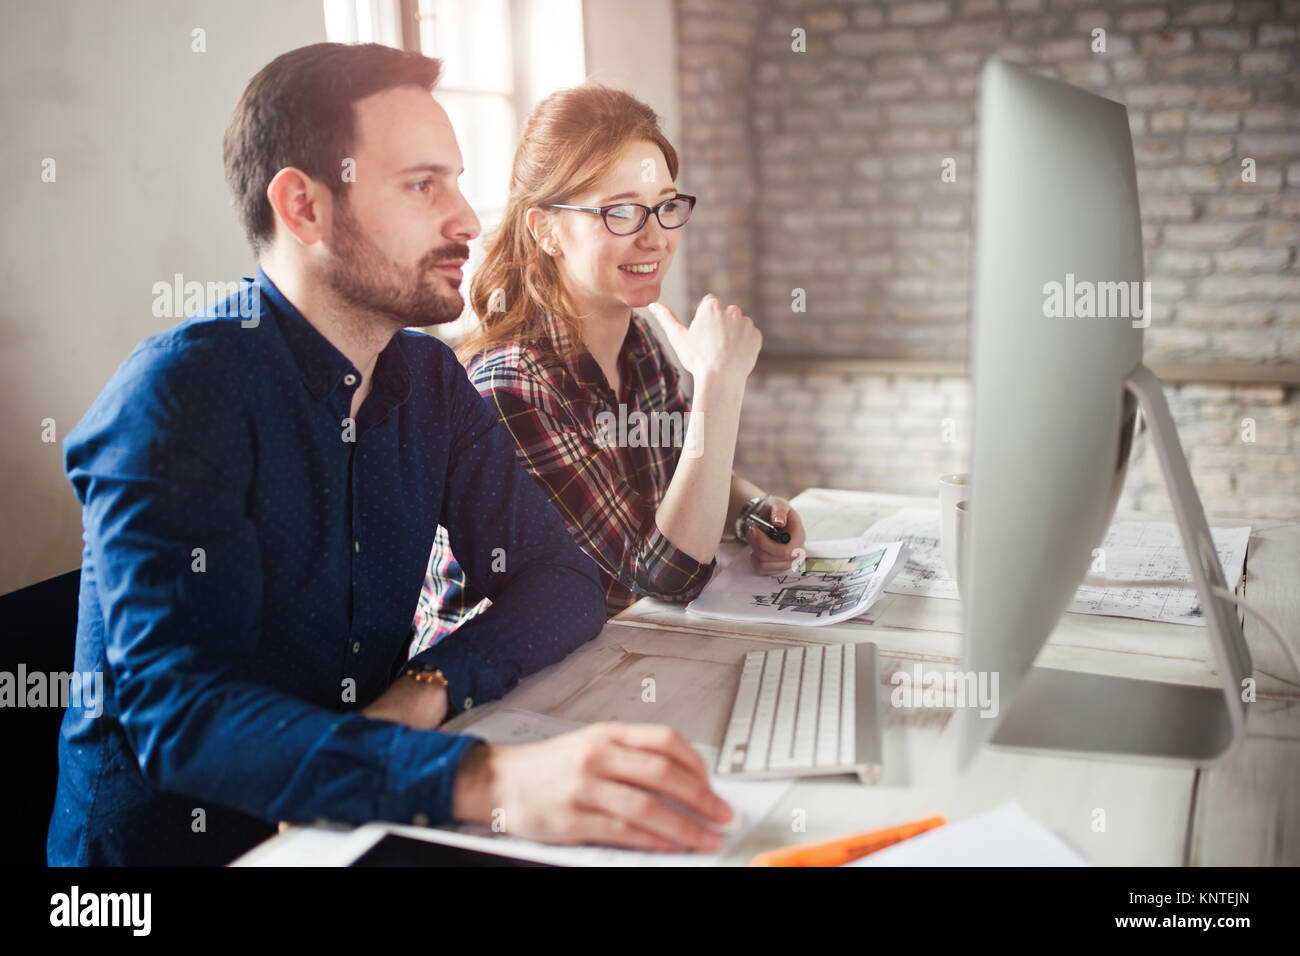 Programmers working in a software developing company office - Stock Image